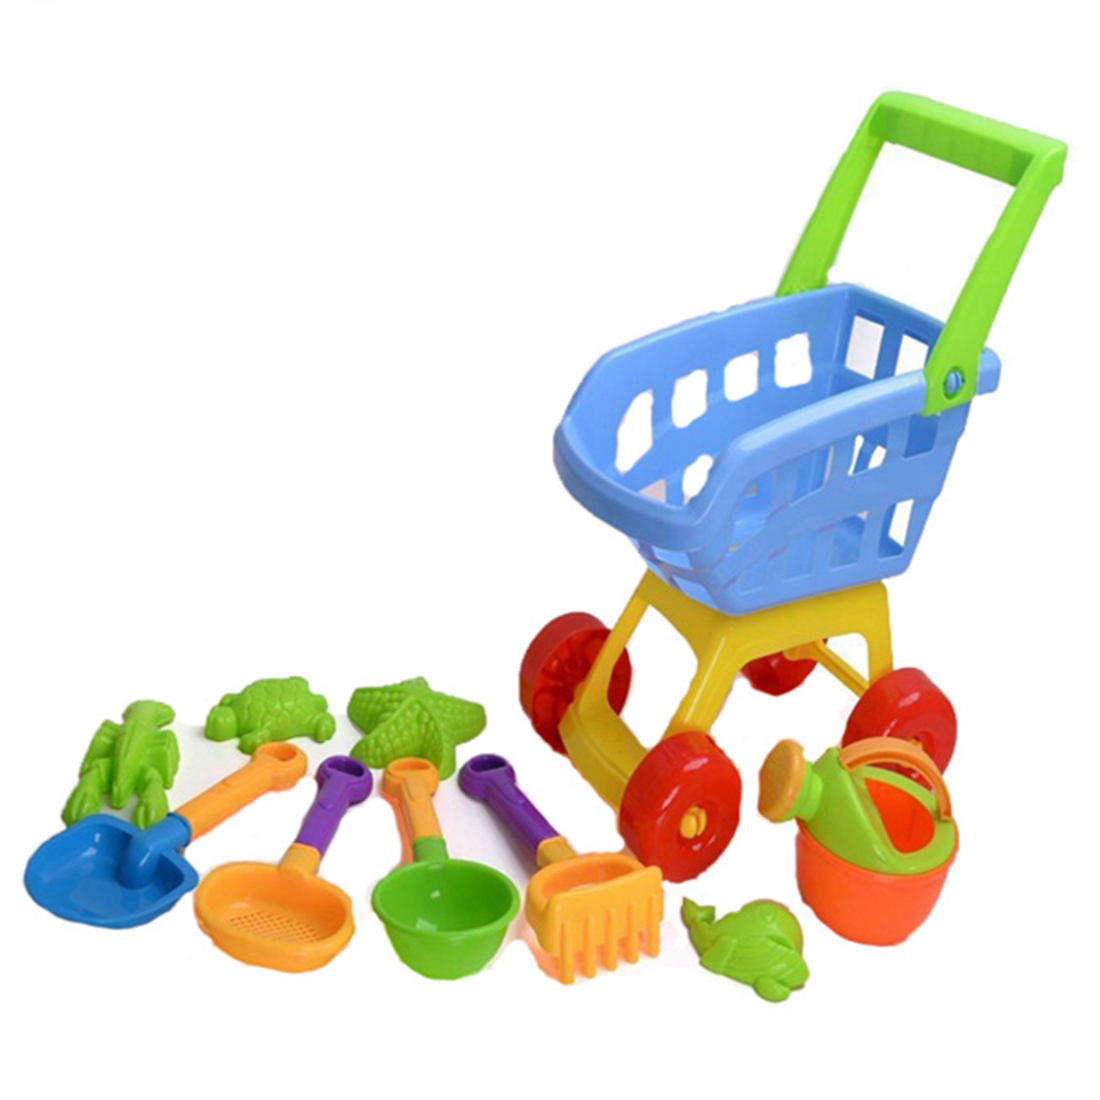 Hot Sale 10Pcs Outdoor Beach Sand Toy Set With Trolley Mold Tools Kettle For Children Kids Baby Sea Water Fun Sports Bathroom